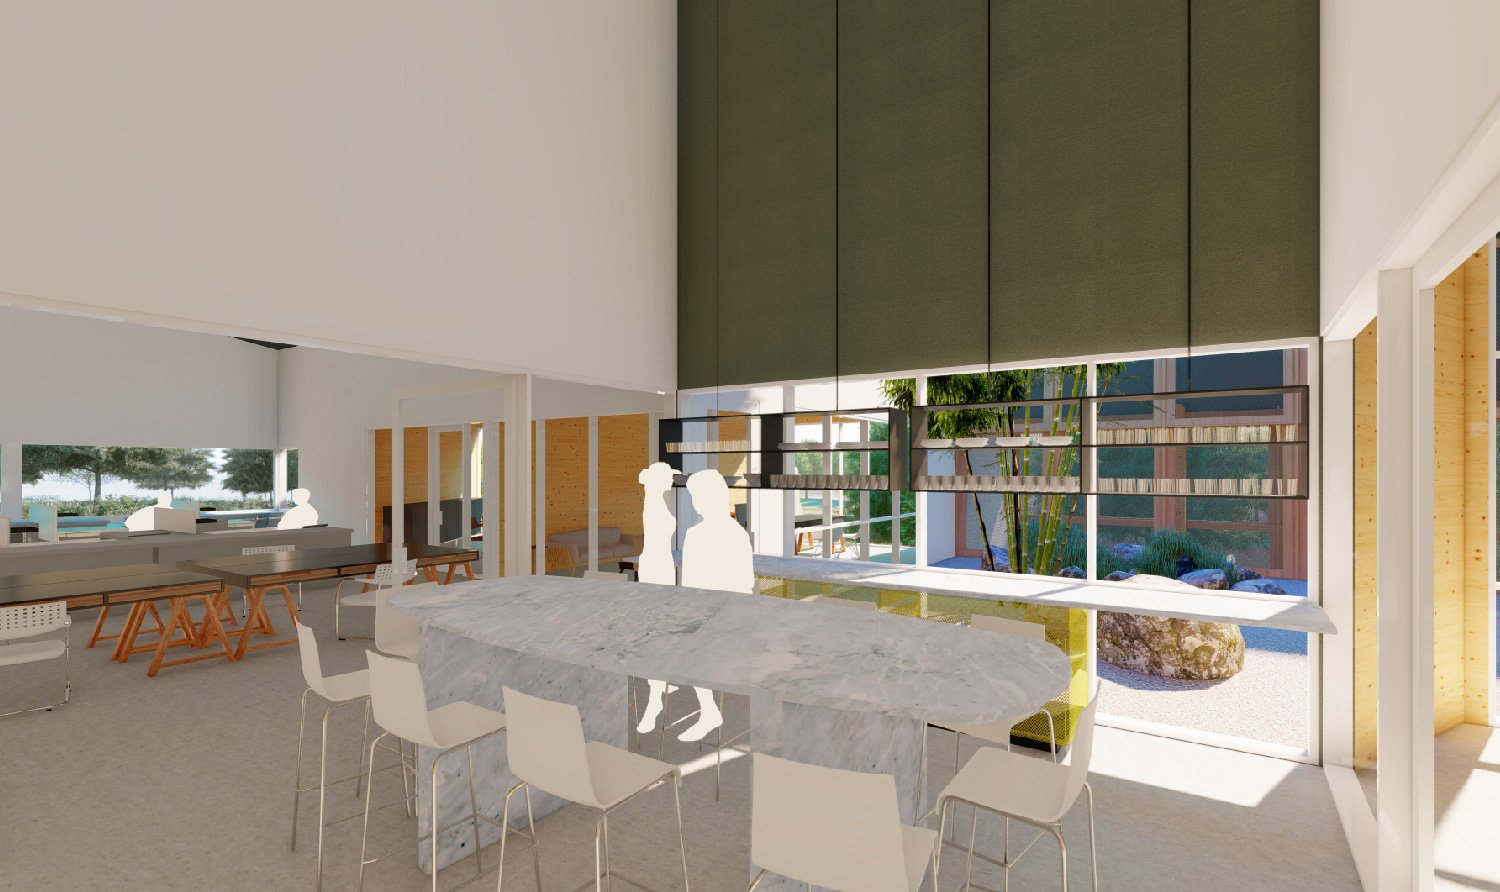 Interior spaces have equitable access to views, natural light and ventilation. University of Arkansas Community Design Center